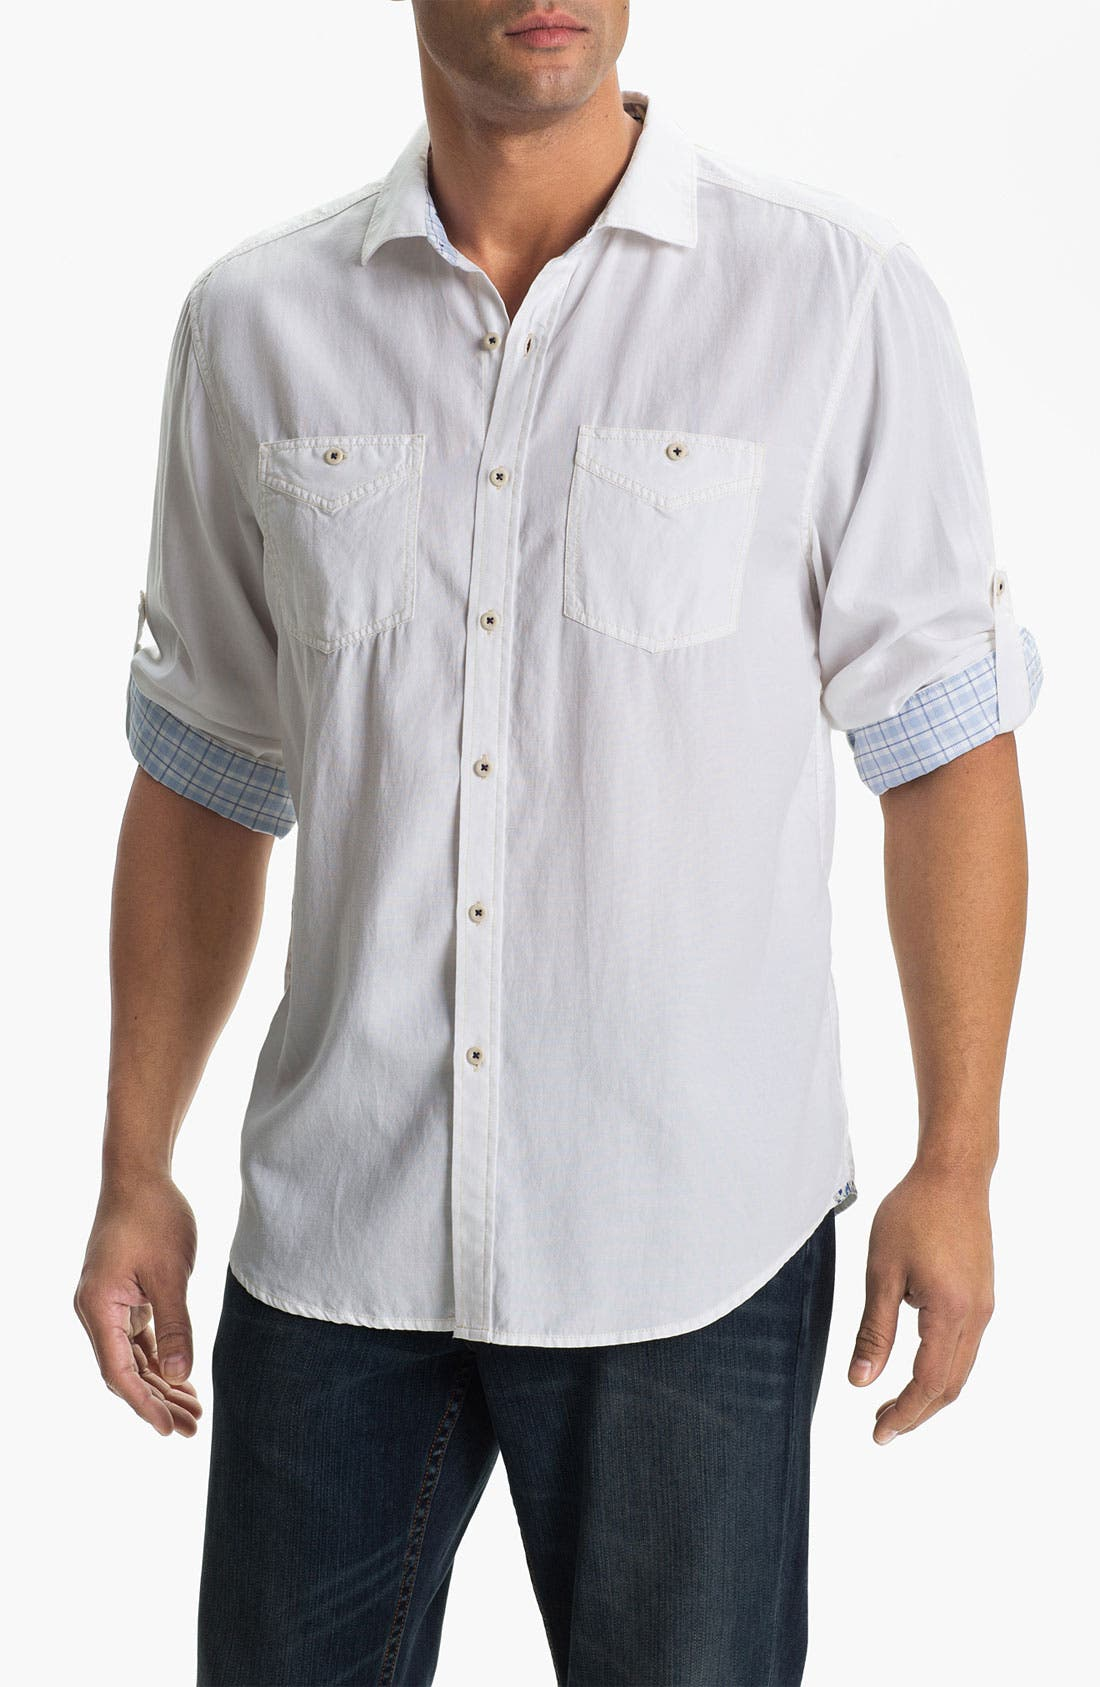 Alternate Image 1 Selected - Tommy Bahama Denim 'Sand City' Island Modern Fit Sport Shirt